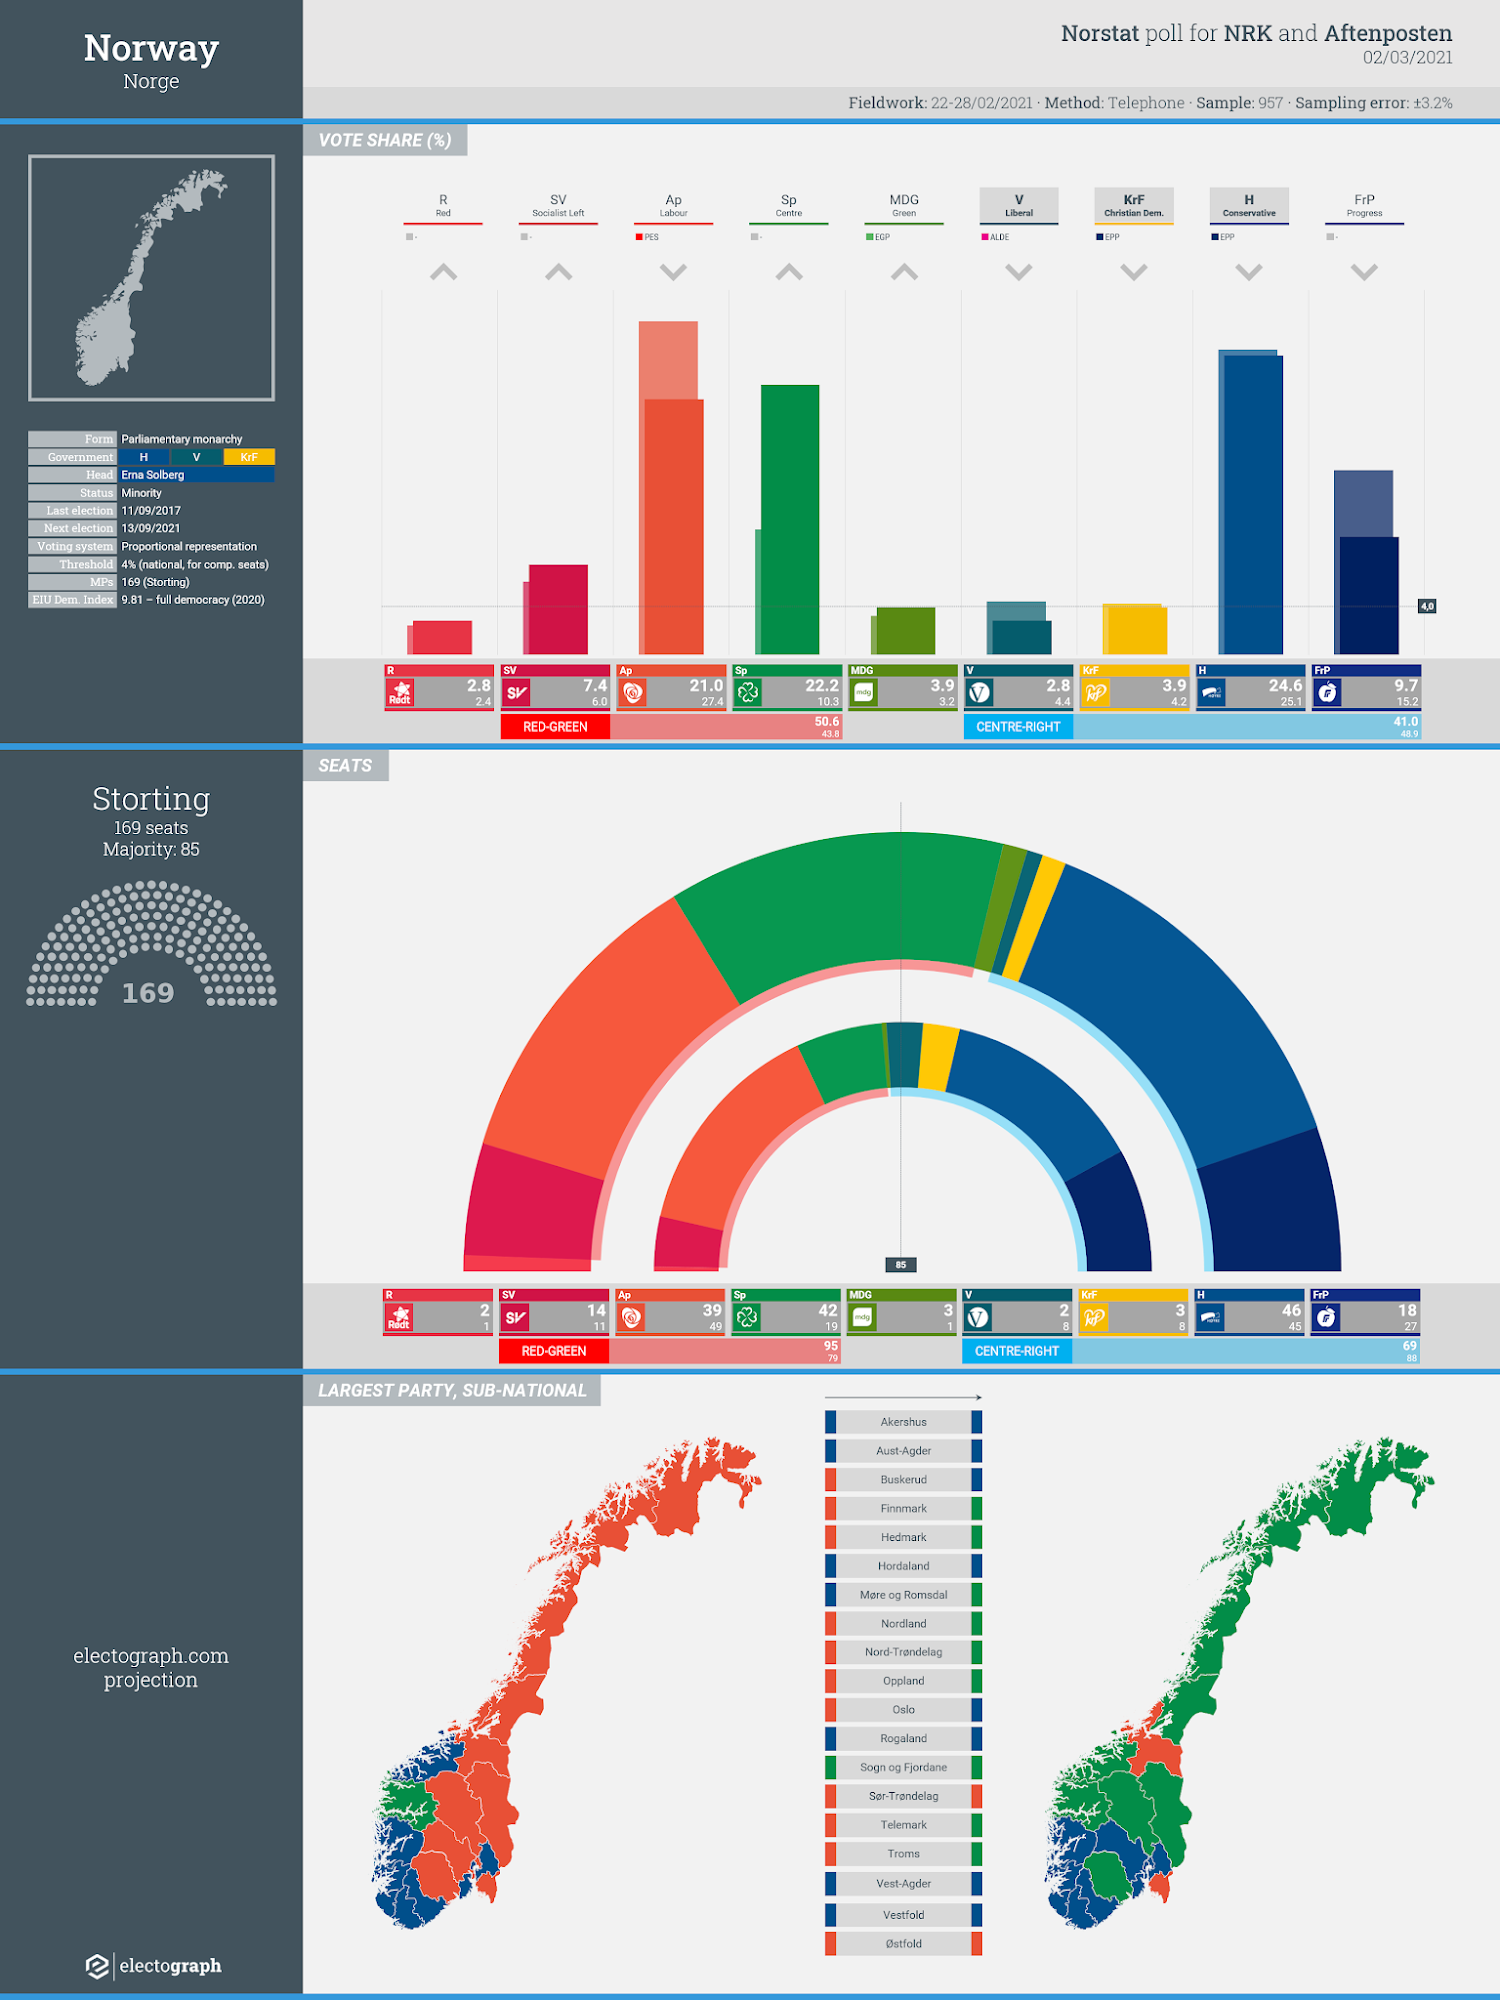 NORWAY: Norstat poll chart for NRK and Aftenposten, 2 March 2021